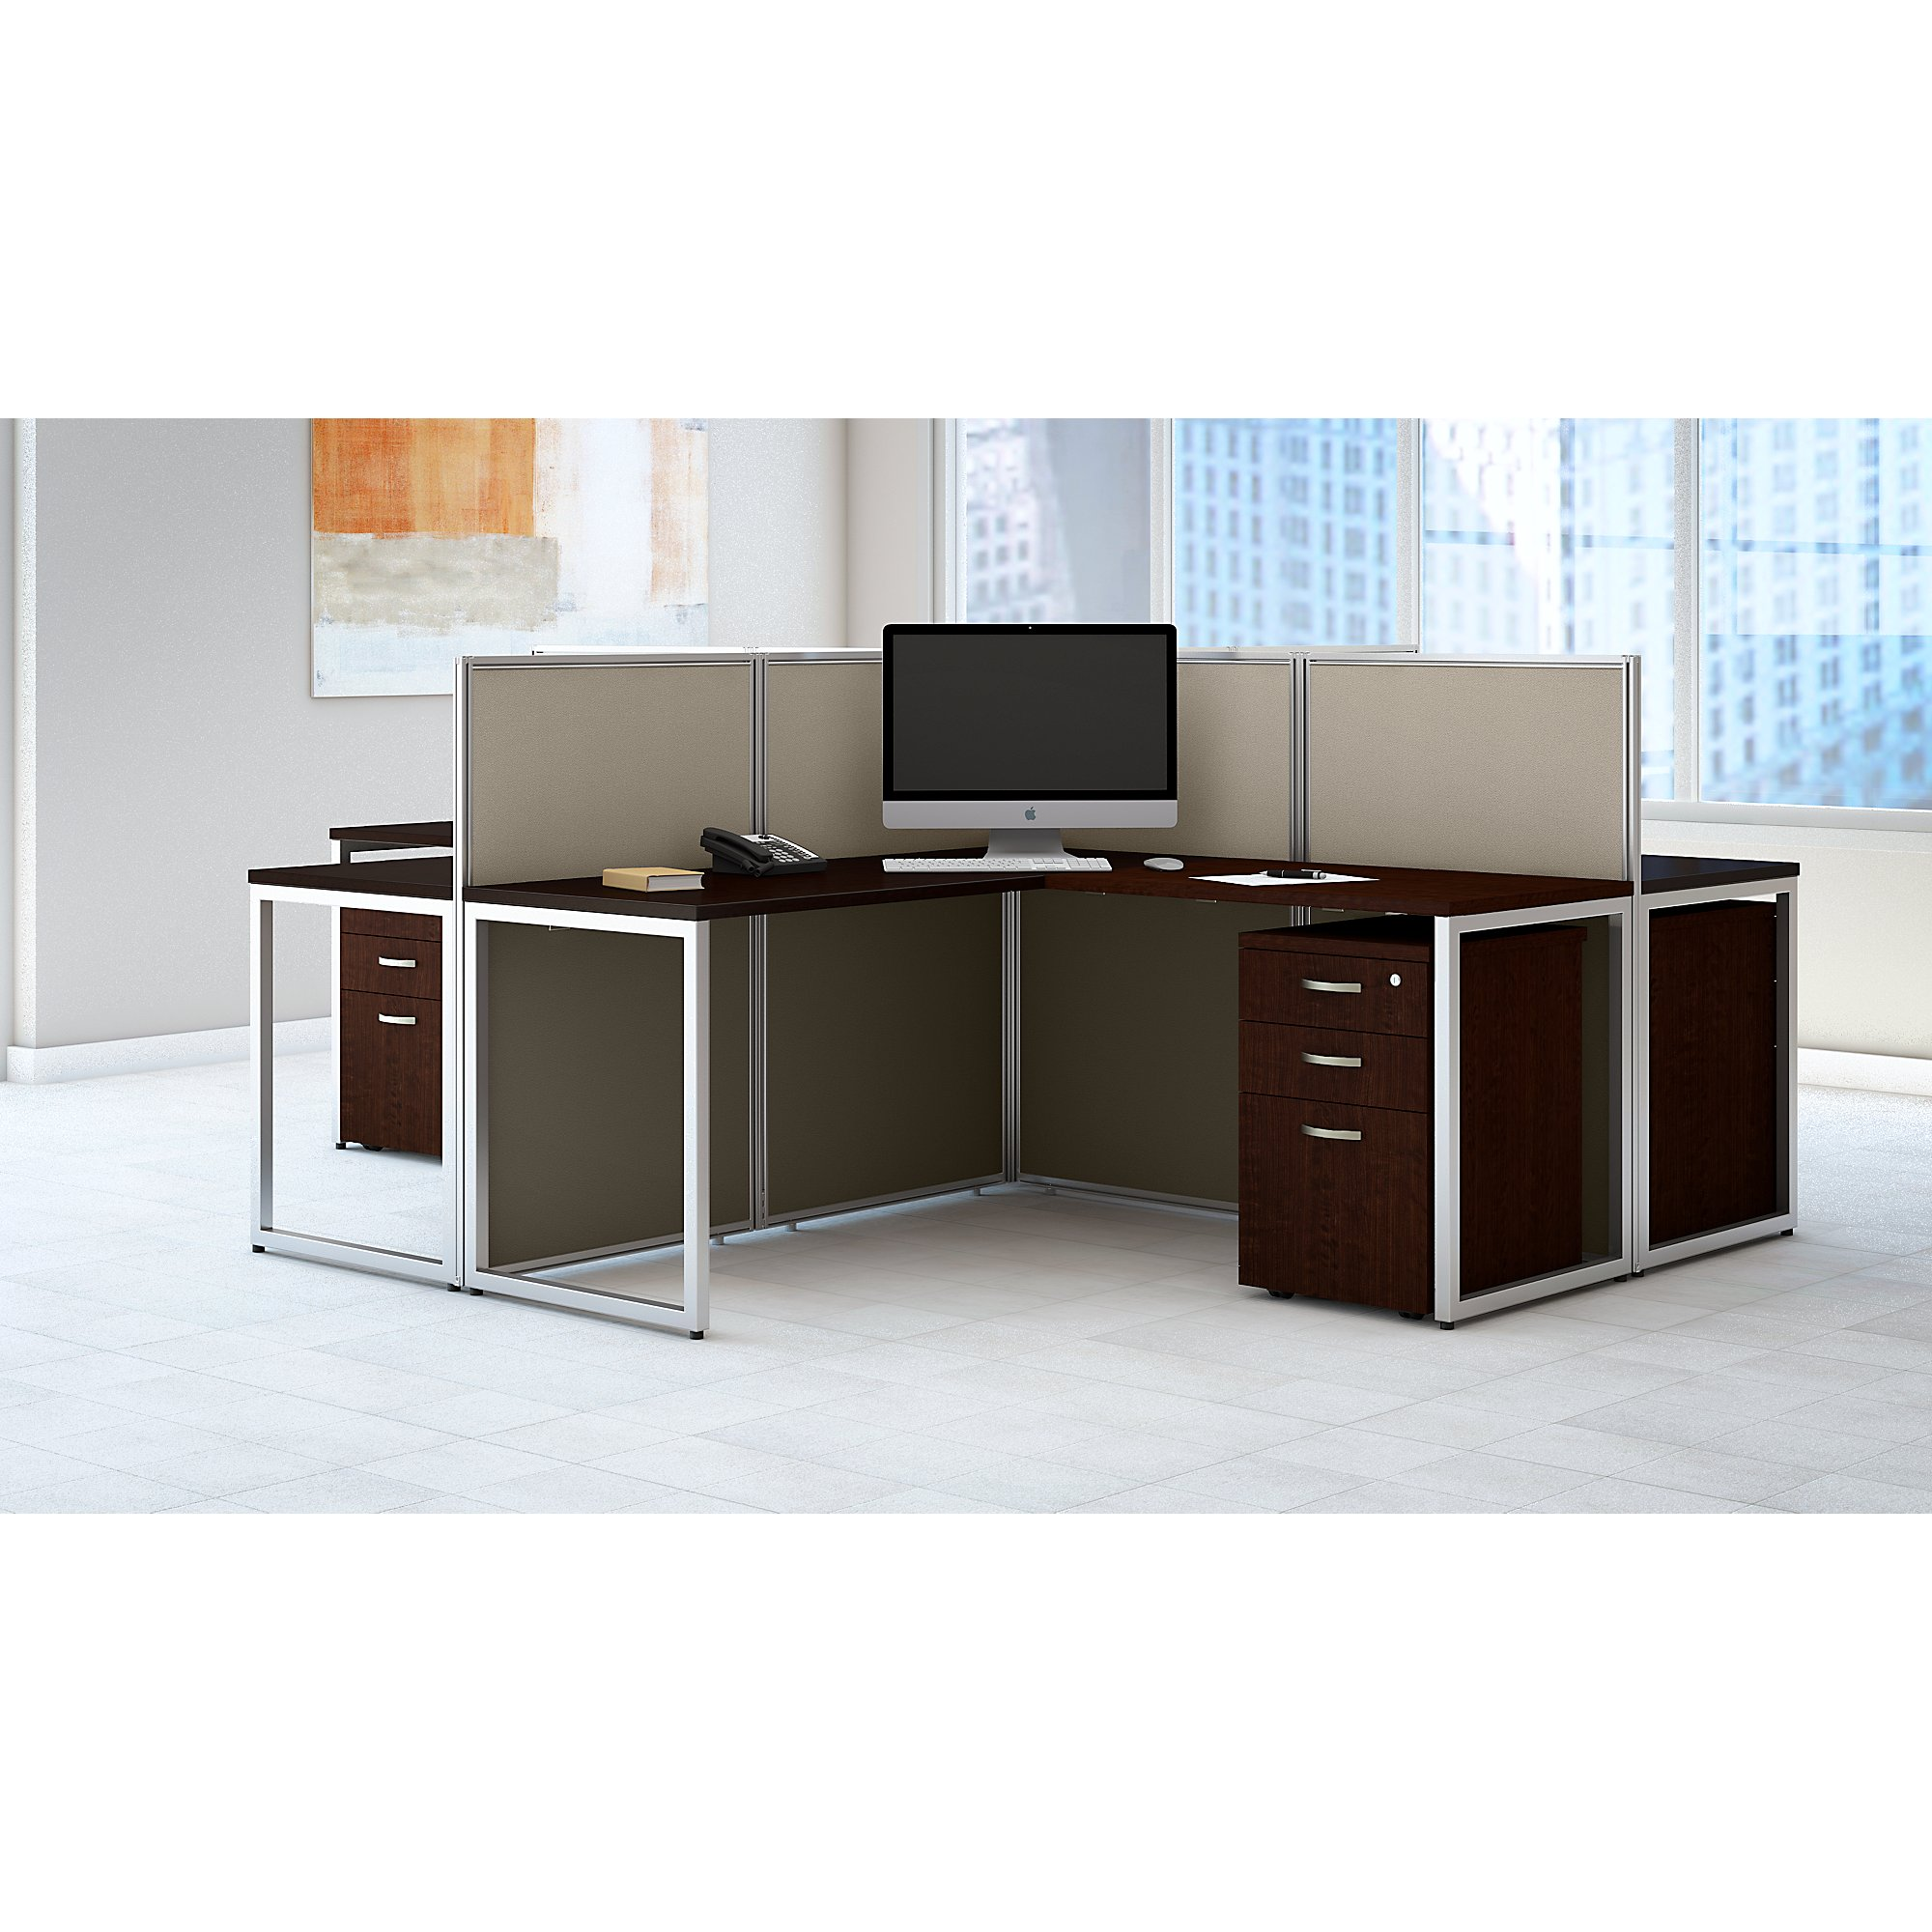 eod760smr easy office 4 person cubicle